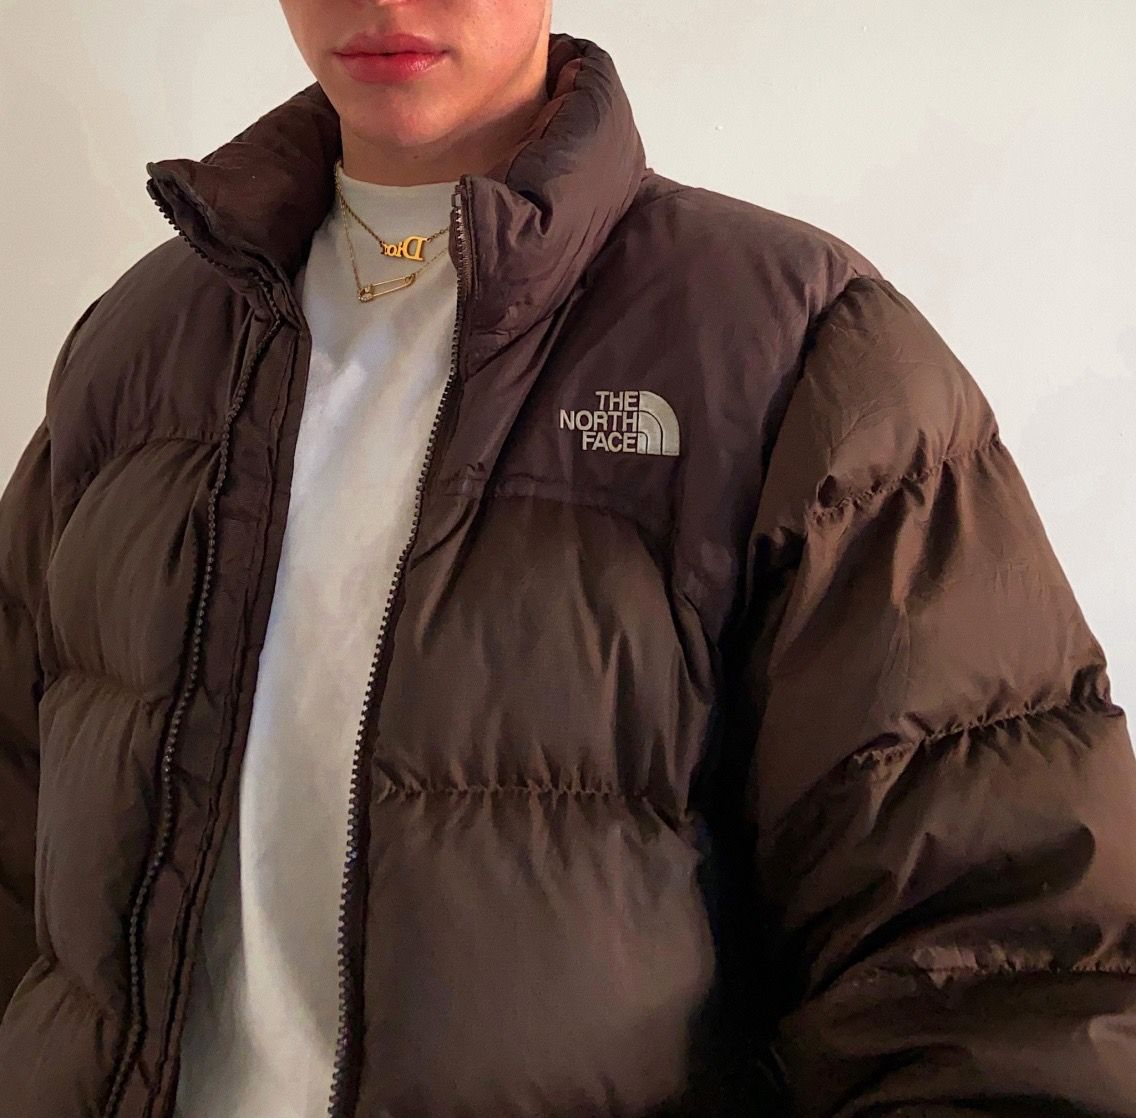 Kendall Jenner Brown Jacket The North Face 700 The North Face Brown Puffer North Face Jacket Outfit Brown North Face Jacket North Face Puffer Jacket [ 1118 x 1136 Pixel ]